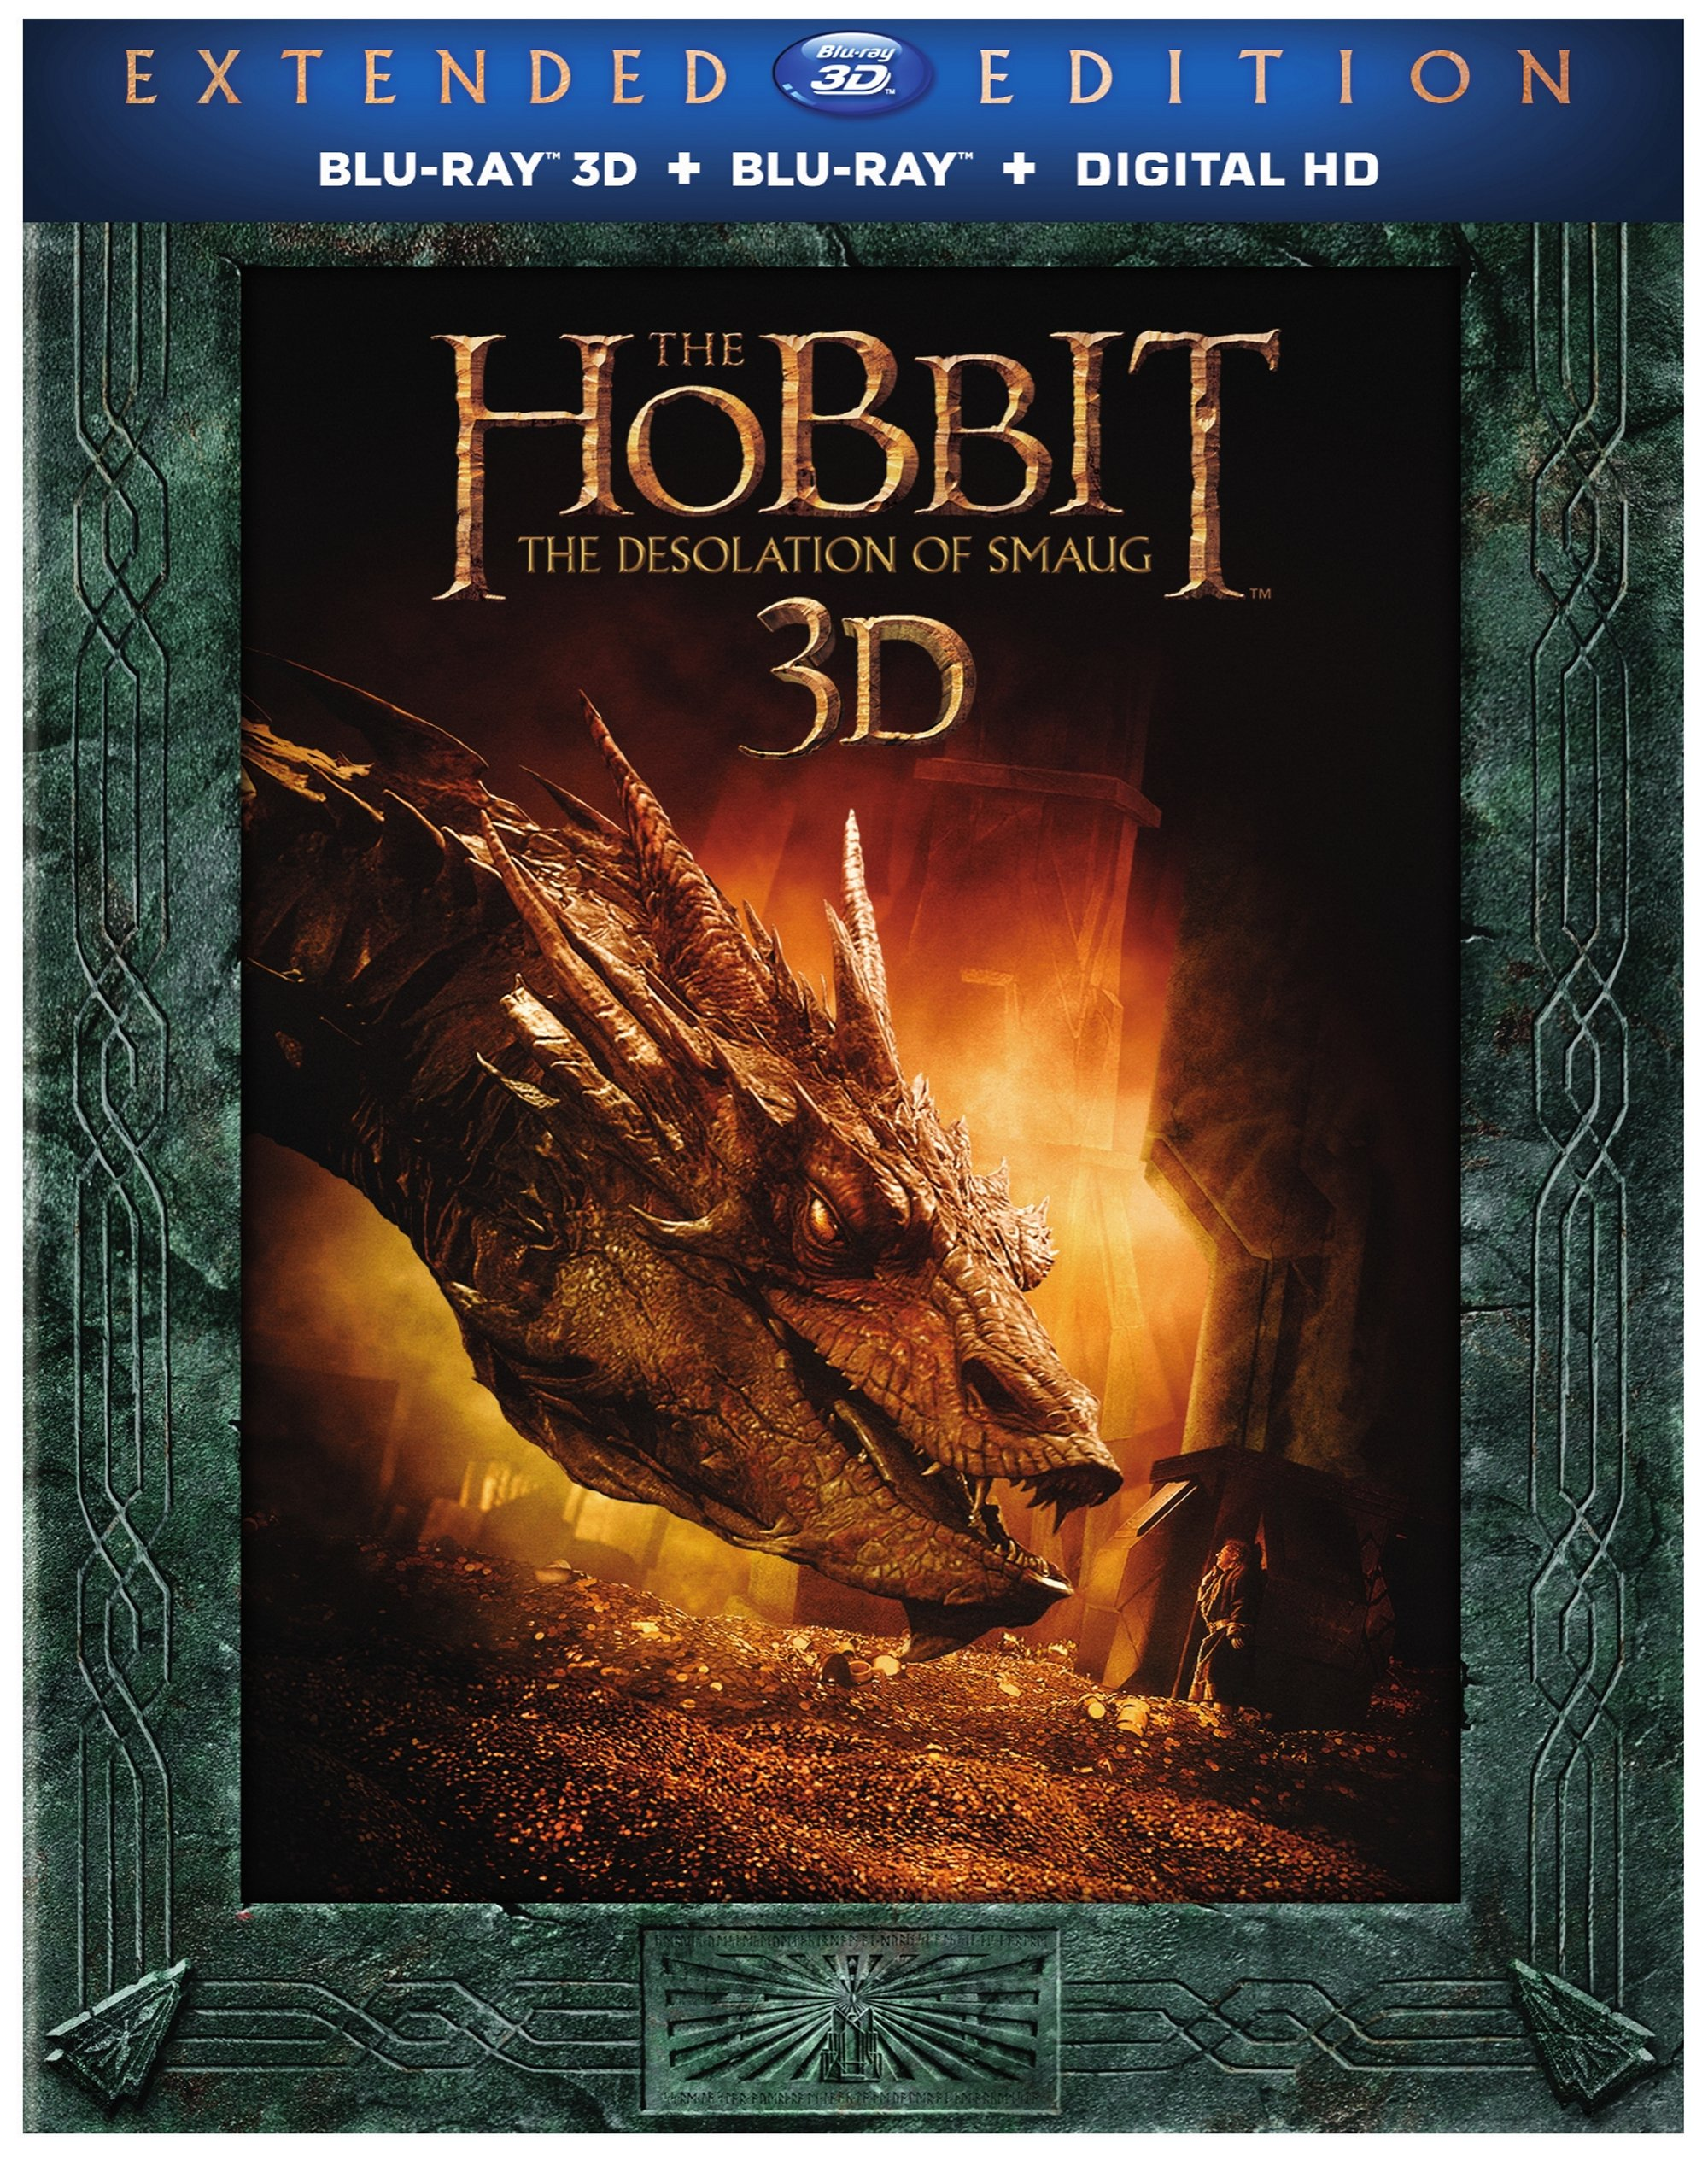 The hobbit: the desolation of smaug dvd release date april 8, 2014.